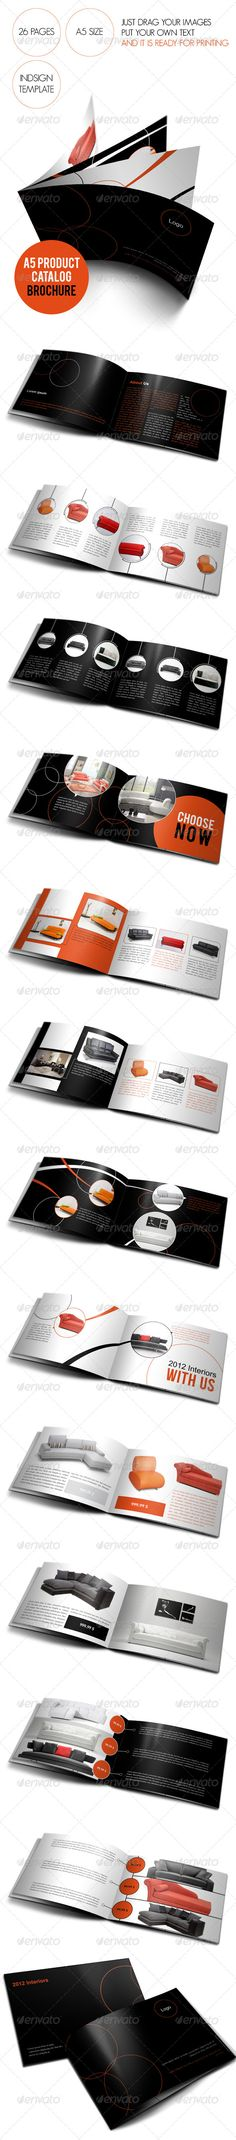 A5 Product Catalog \ Brochure  #GraphicRiver        Compatibility:       Adobe indesign cs5, cs4  Content:       Adobe 26 Fully editable pages      Extremly easy to change or remove images      Fully layered      300 DPI ready for printing      All images are just for preview purpose and are not inclued in the main files  Font Used:   Geosanslight  Bebas  Utsaah  Shonar Bangla  	 Please Rate!!      Created: 10July13 GraphicsFilesIncluded: InDesignINDD Layered: